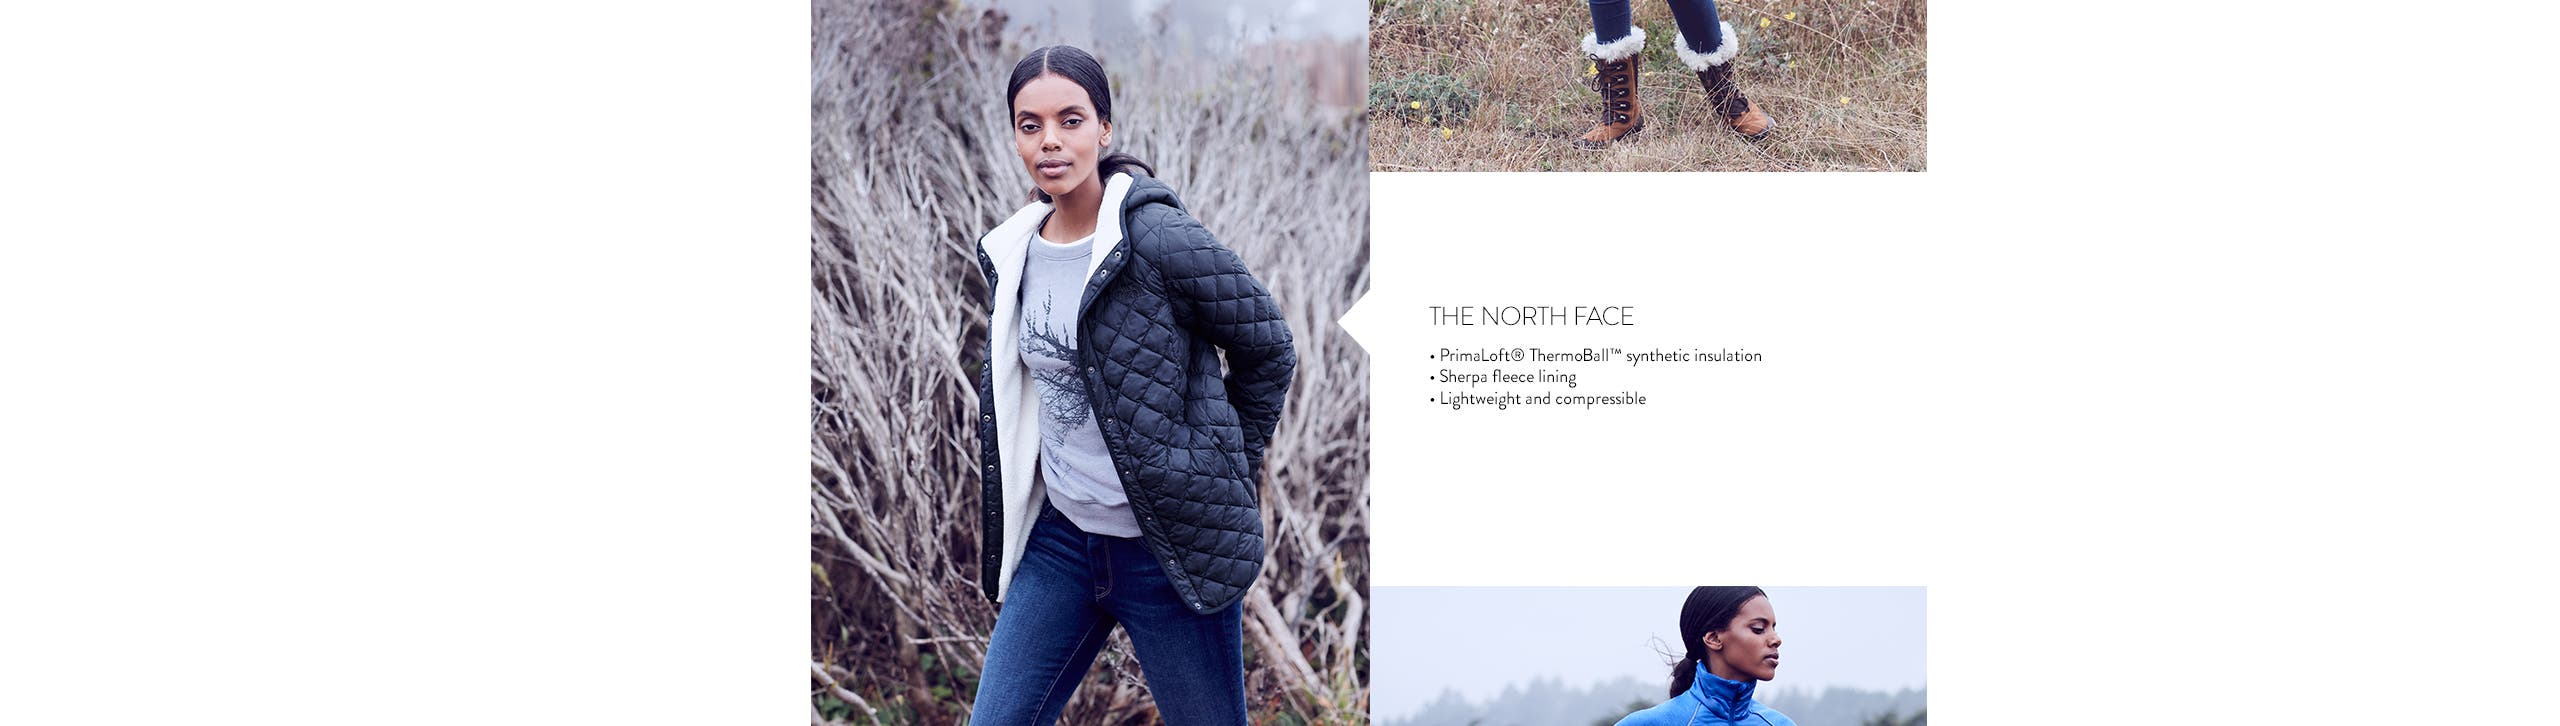 The North Face.